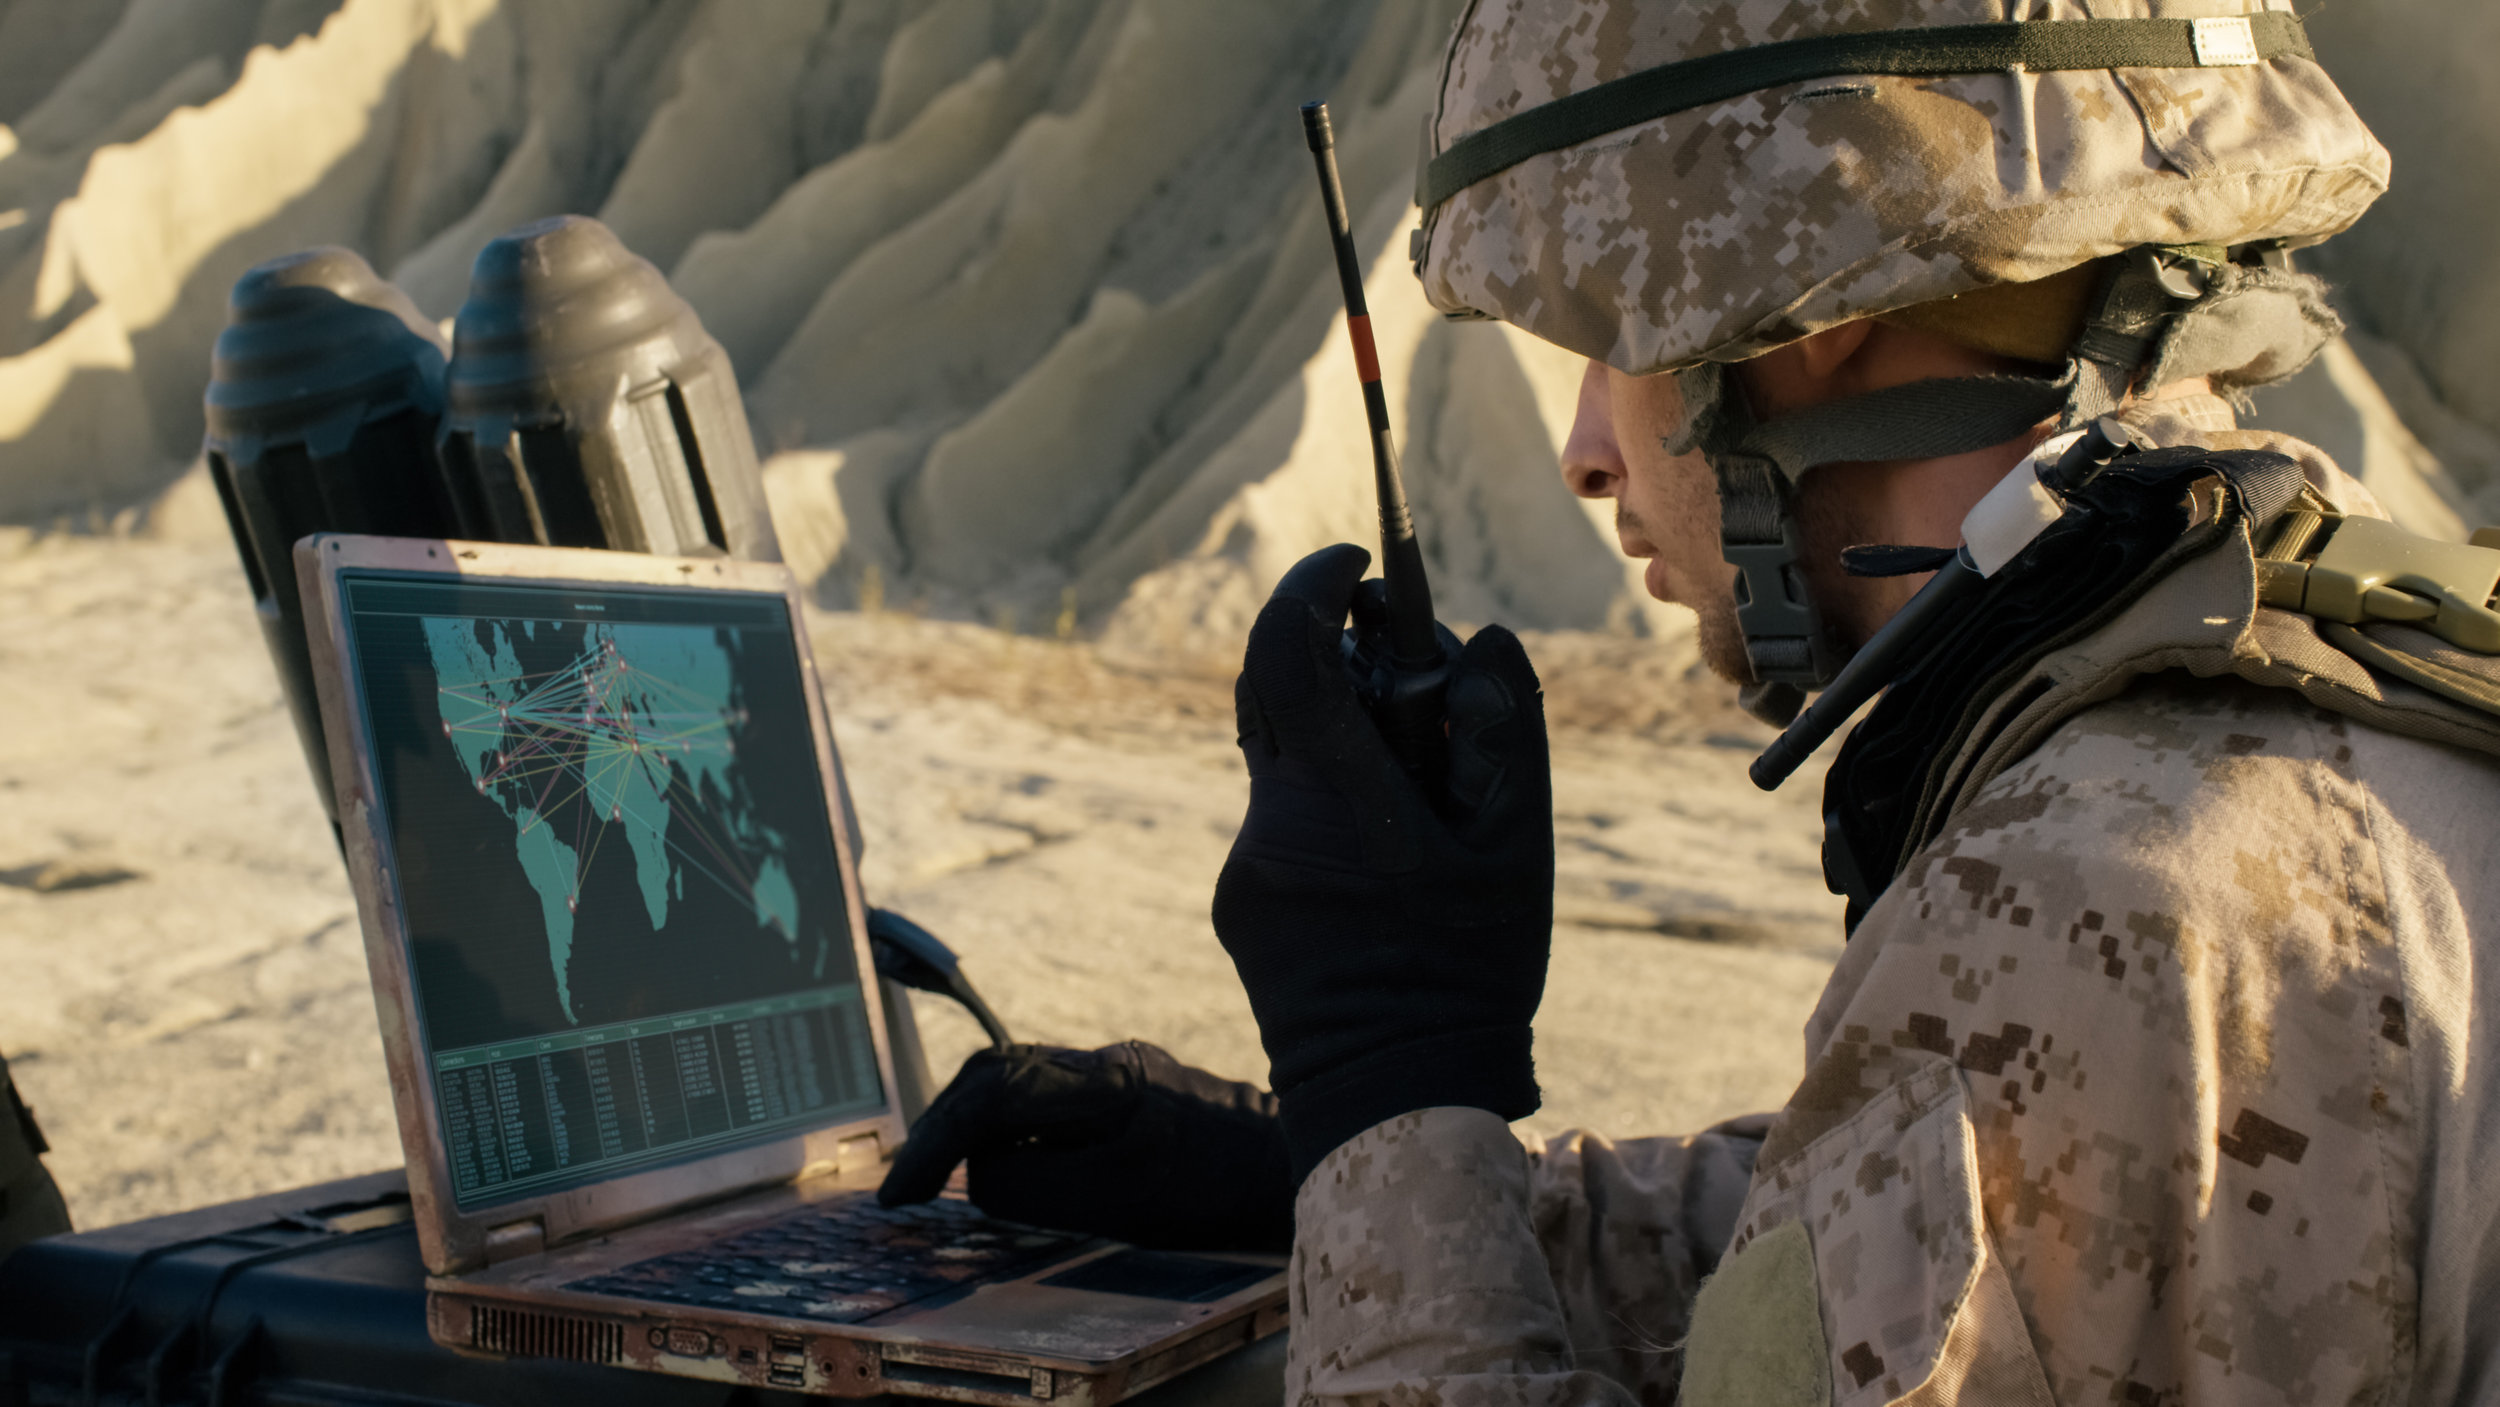 The US military is  the best example of how to apply technology under extreme conditions.